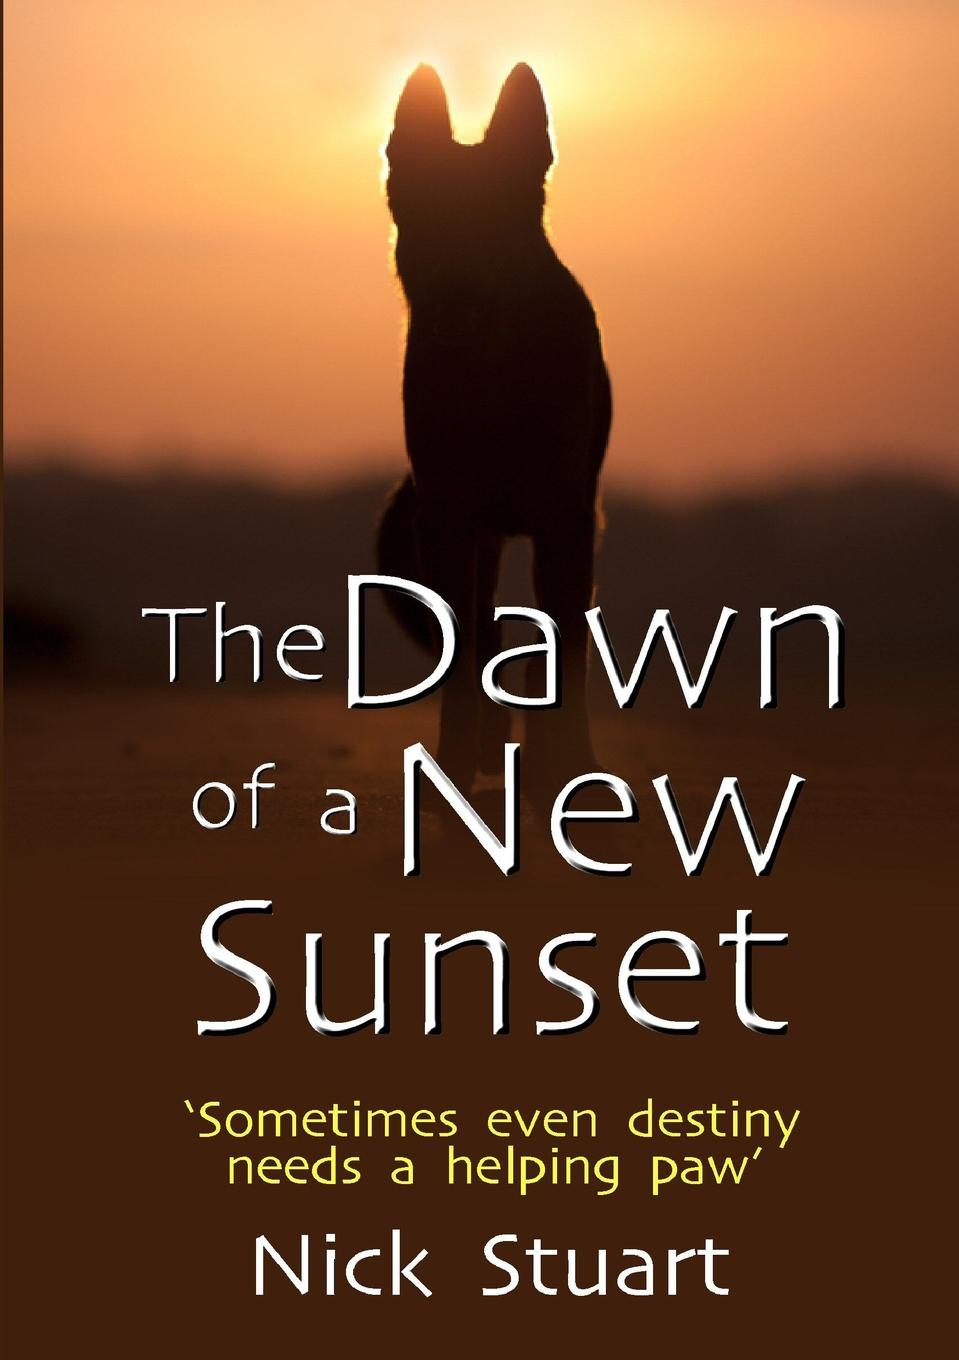 Nick Stuart The Dawn of a New Sunset ed dodge dan s story one man s discovery of his inner health power